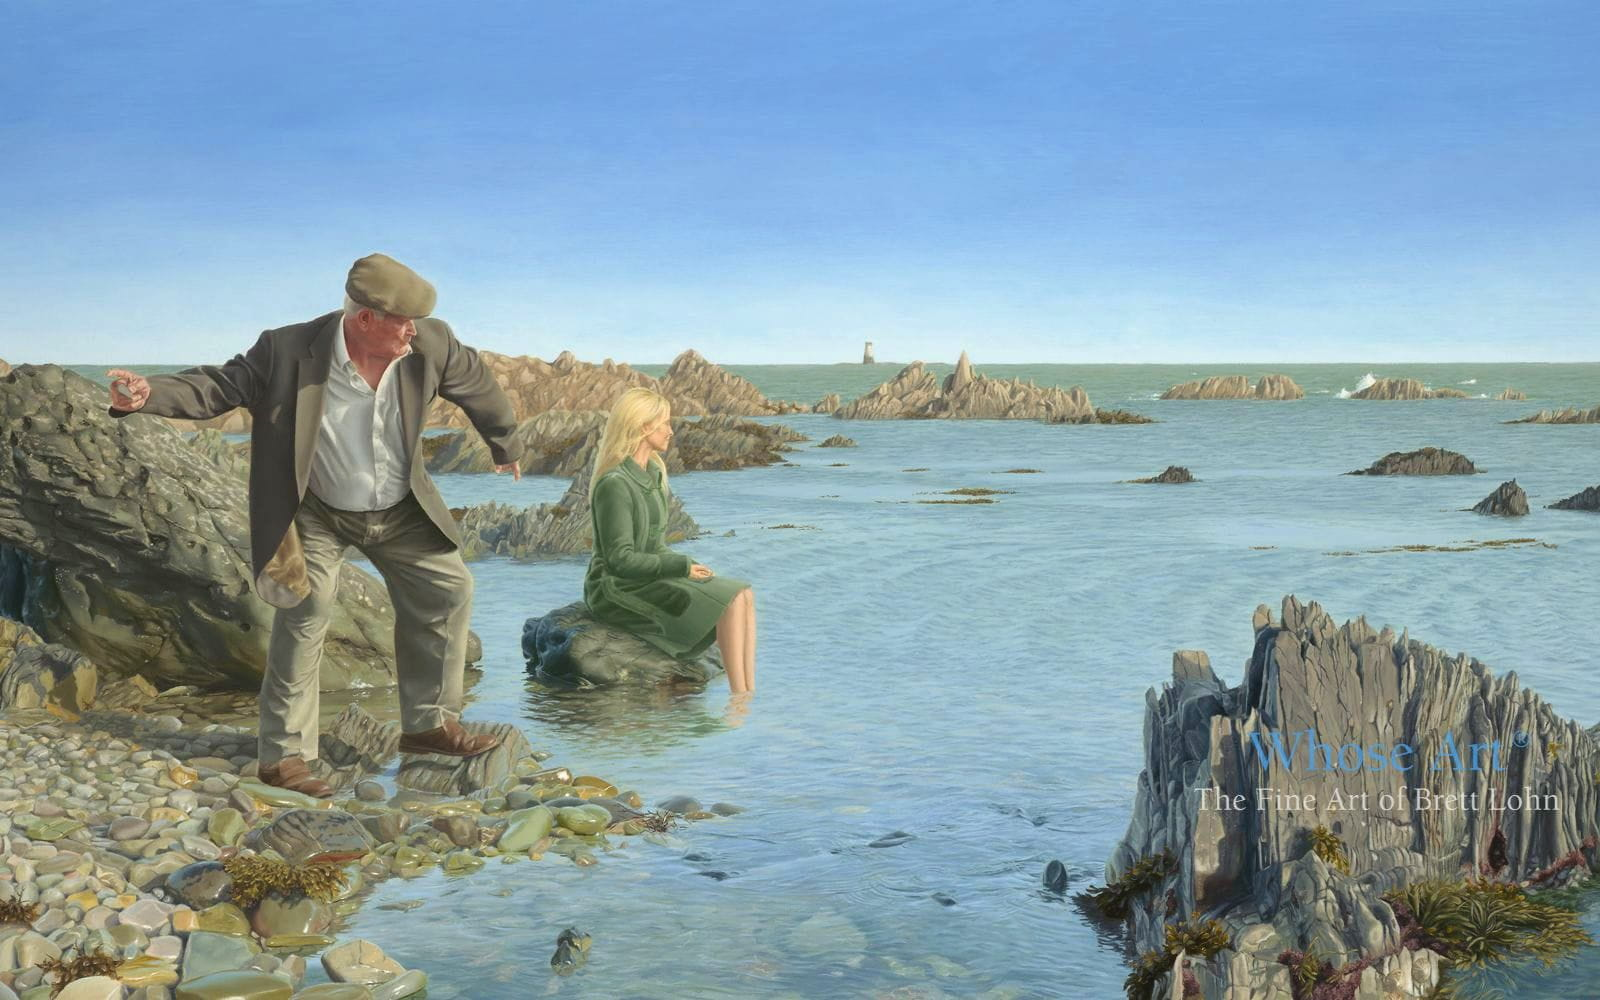 Art that tells a story of an elderly man by the sea casting his cares upon the water, skimming a stone youthfully